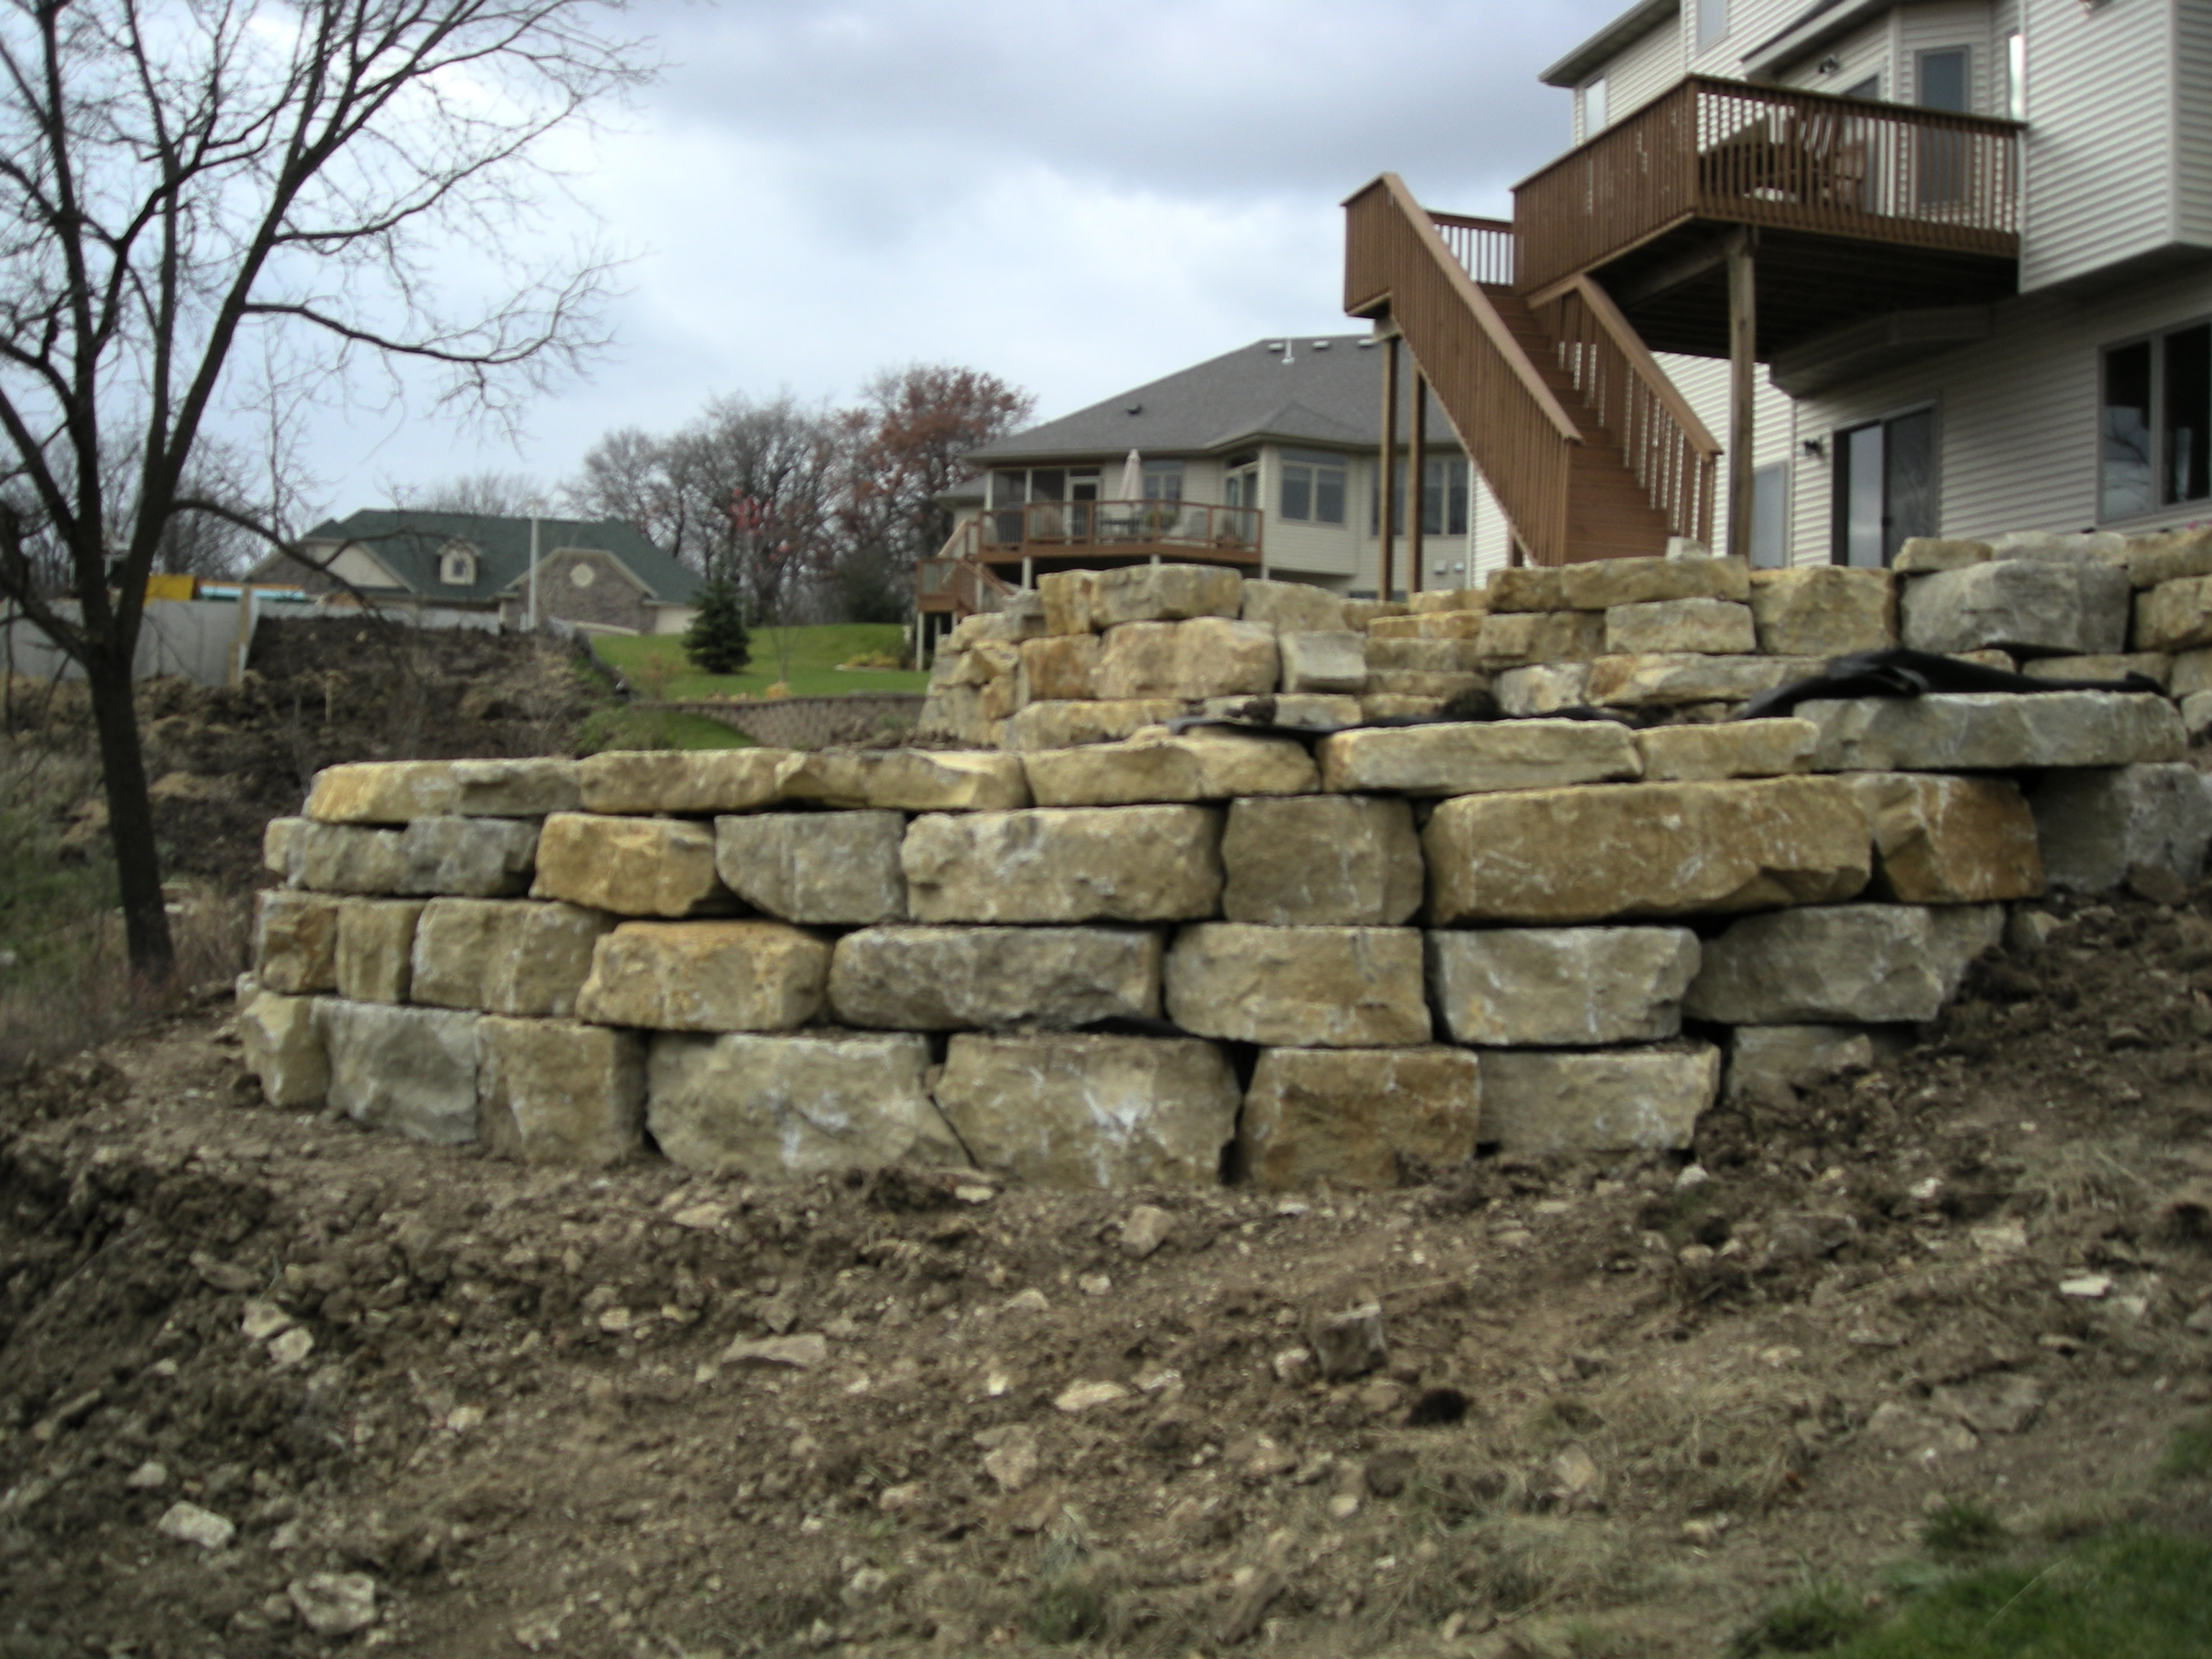 Landscaping Boulders Mn : Landscape boulders walls imgkid the image kid has it